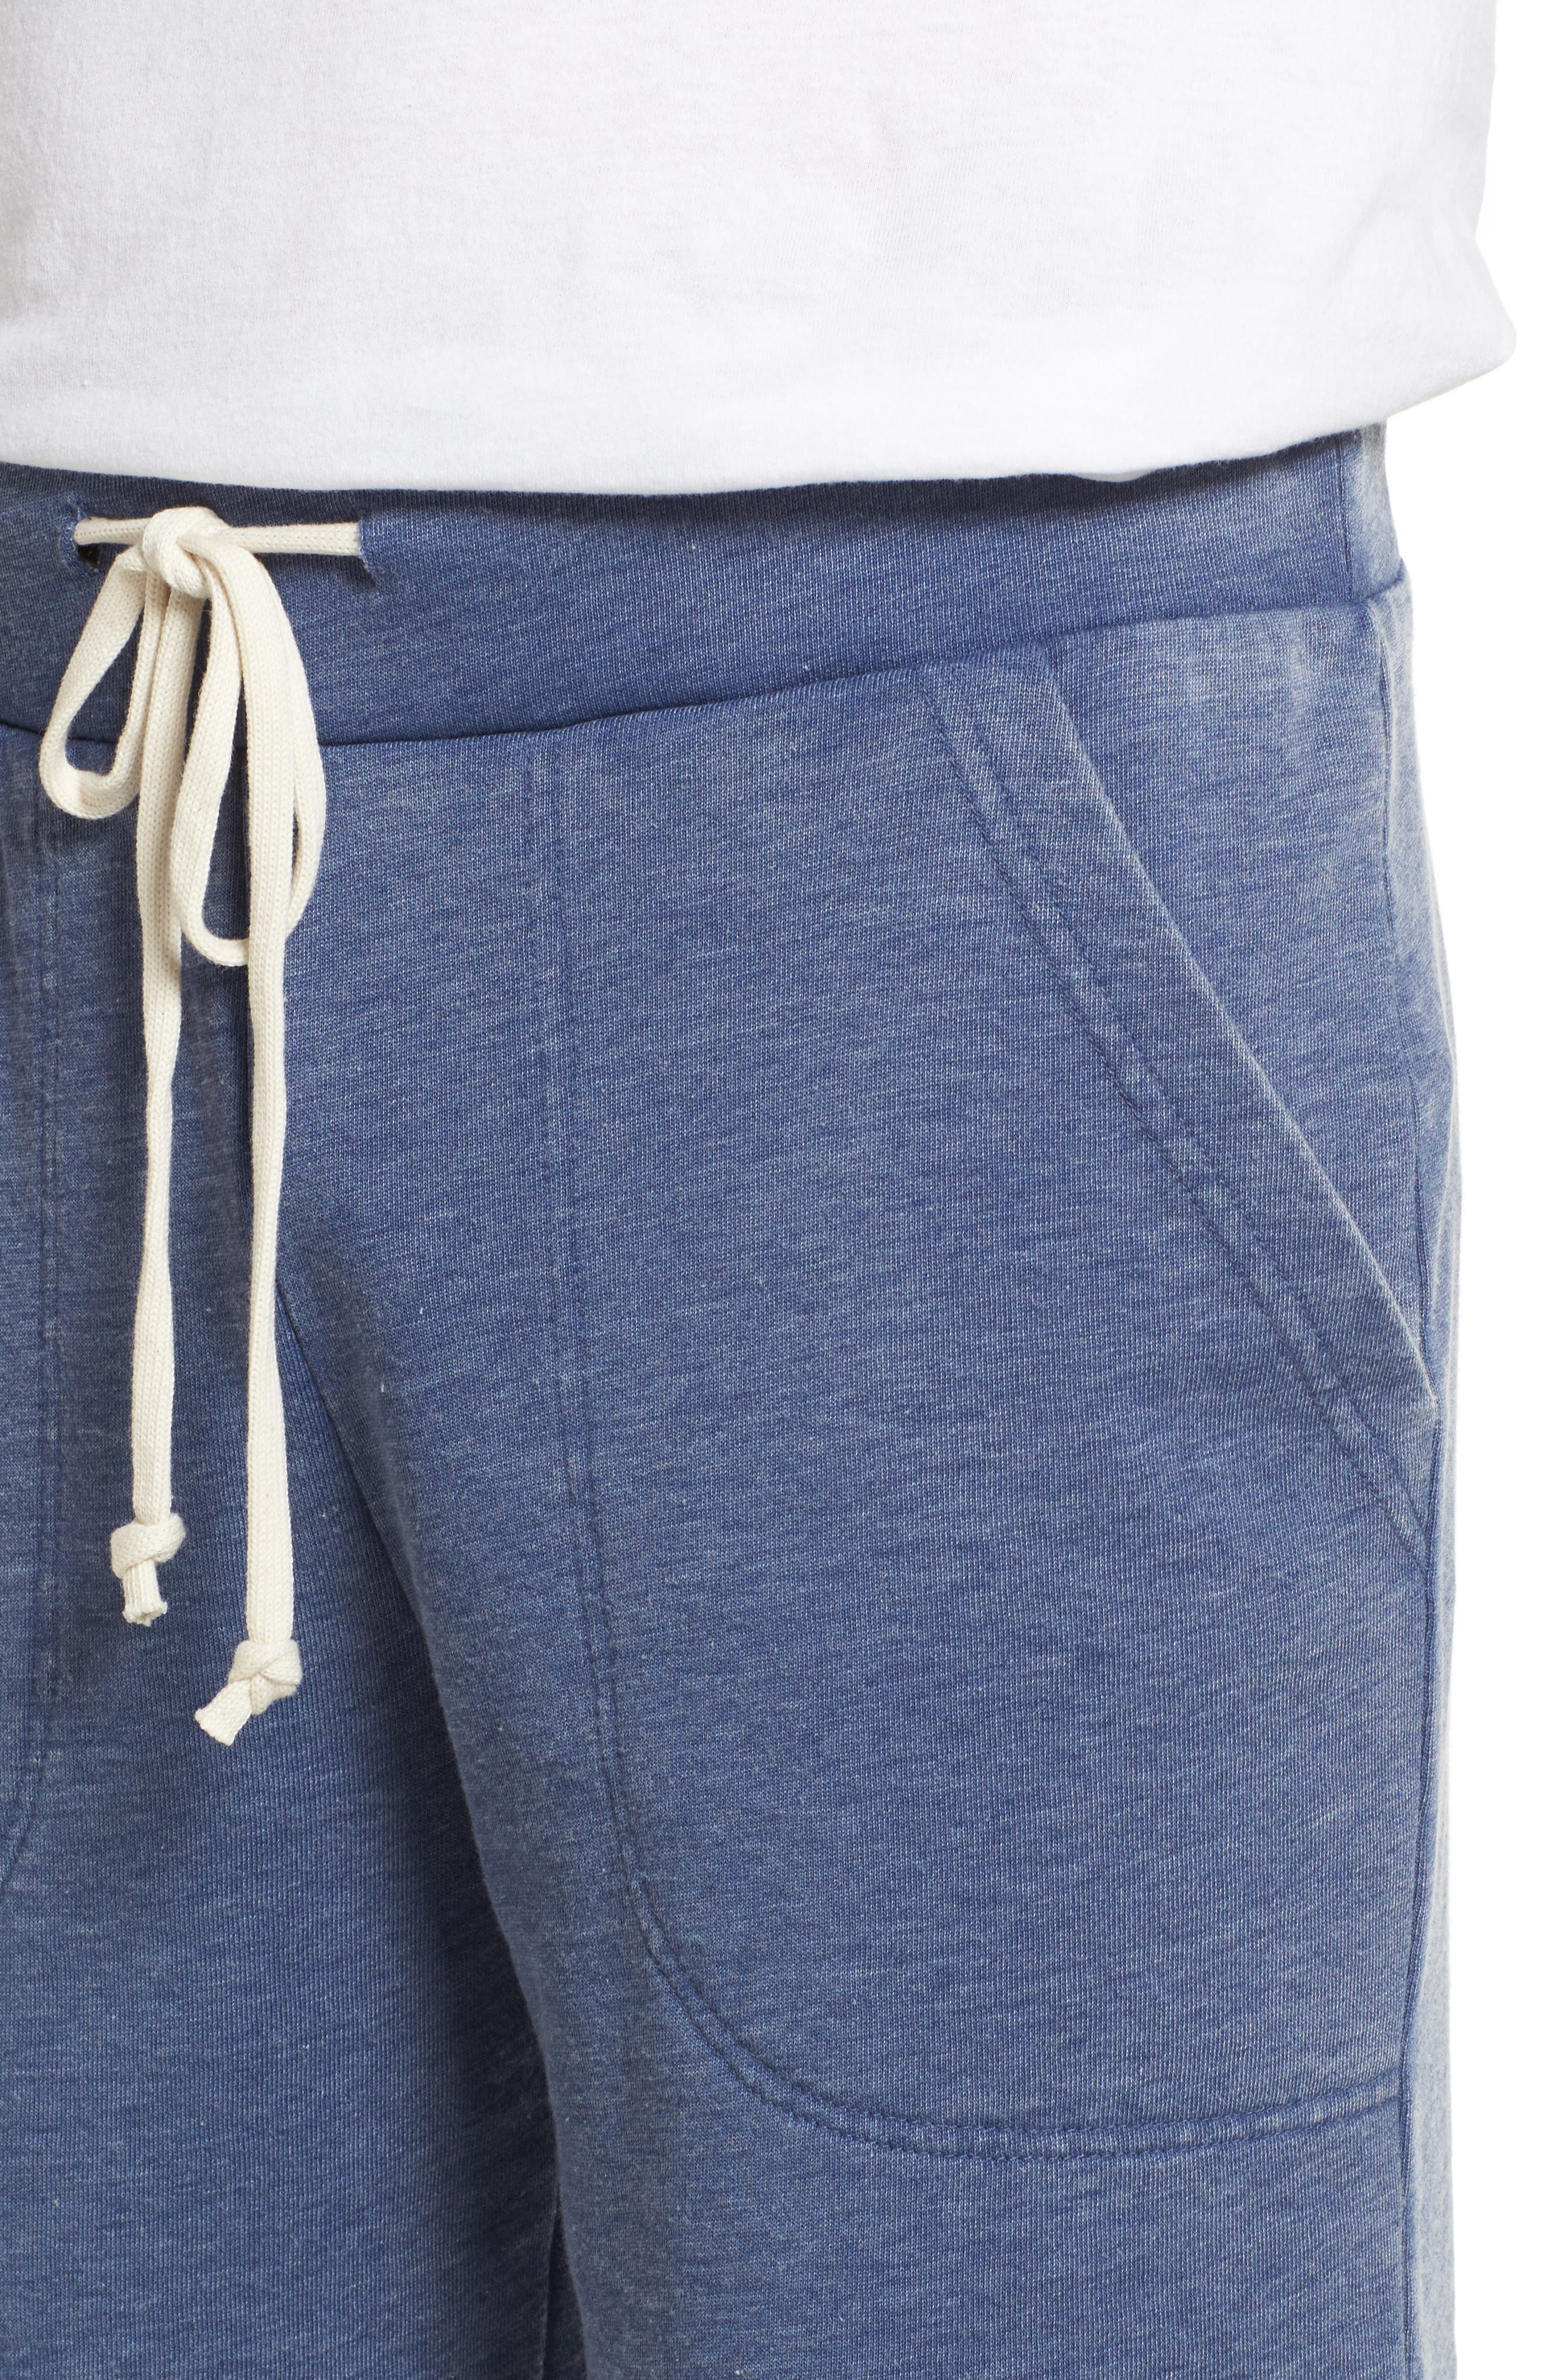 'Victory' French Terry Shorts,                             Alternate thumbnail 4, color,                             Navy